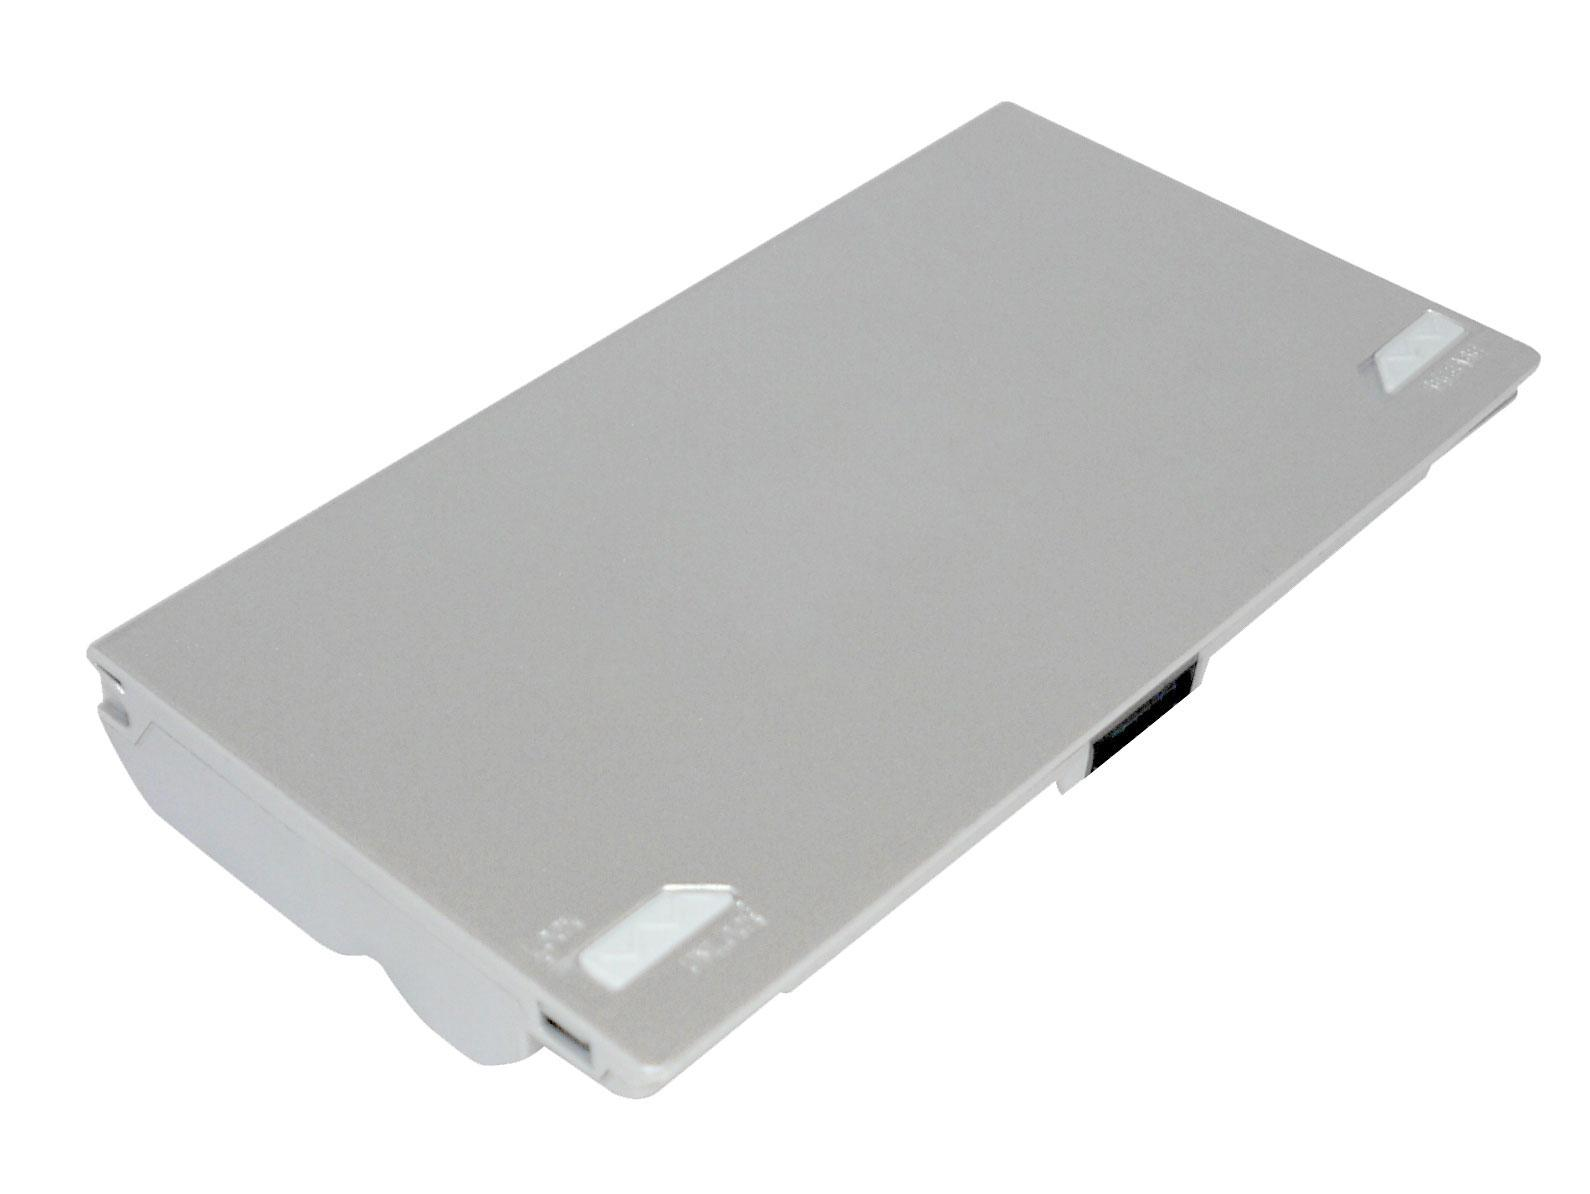 Replacement Sony VAIO VGN-FZ38M Battery